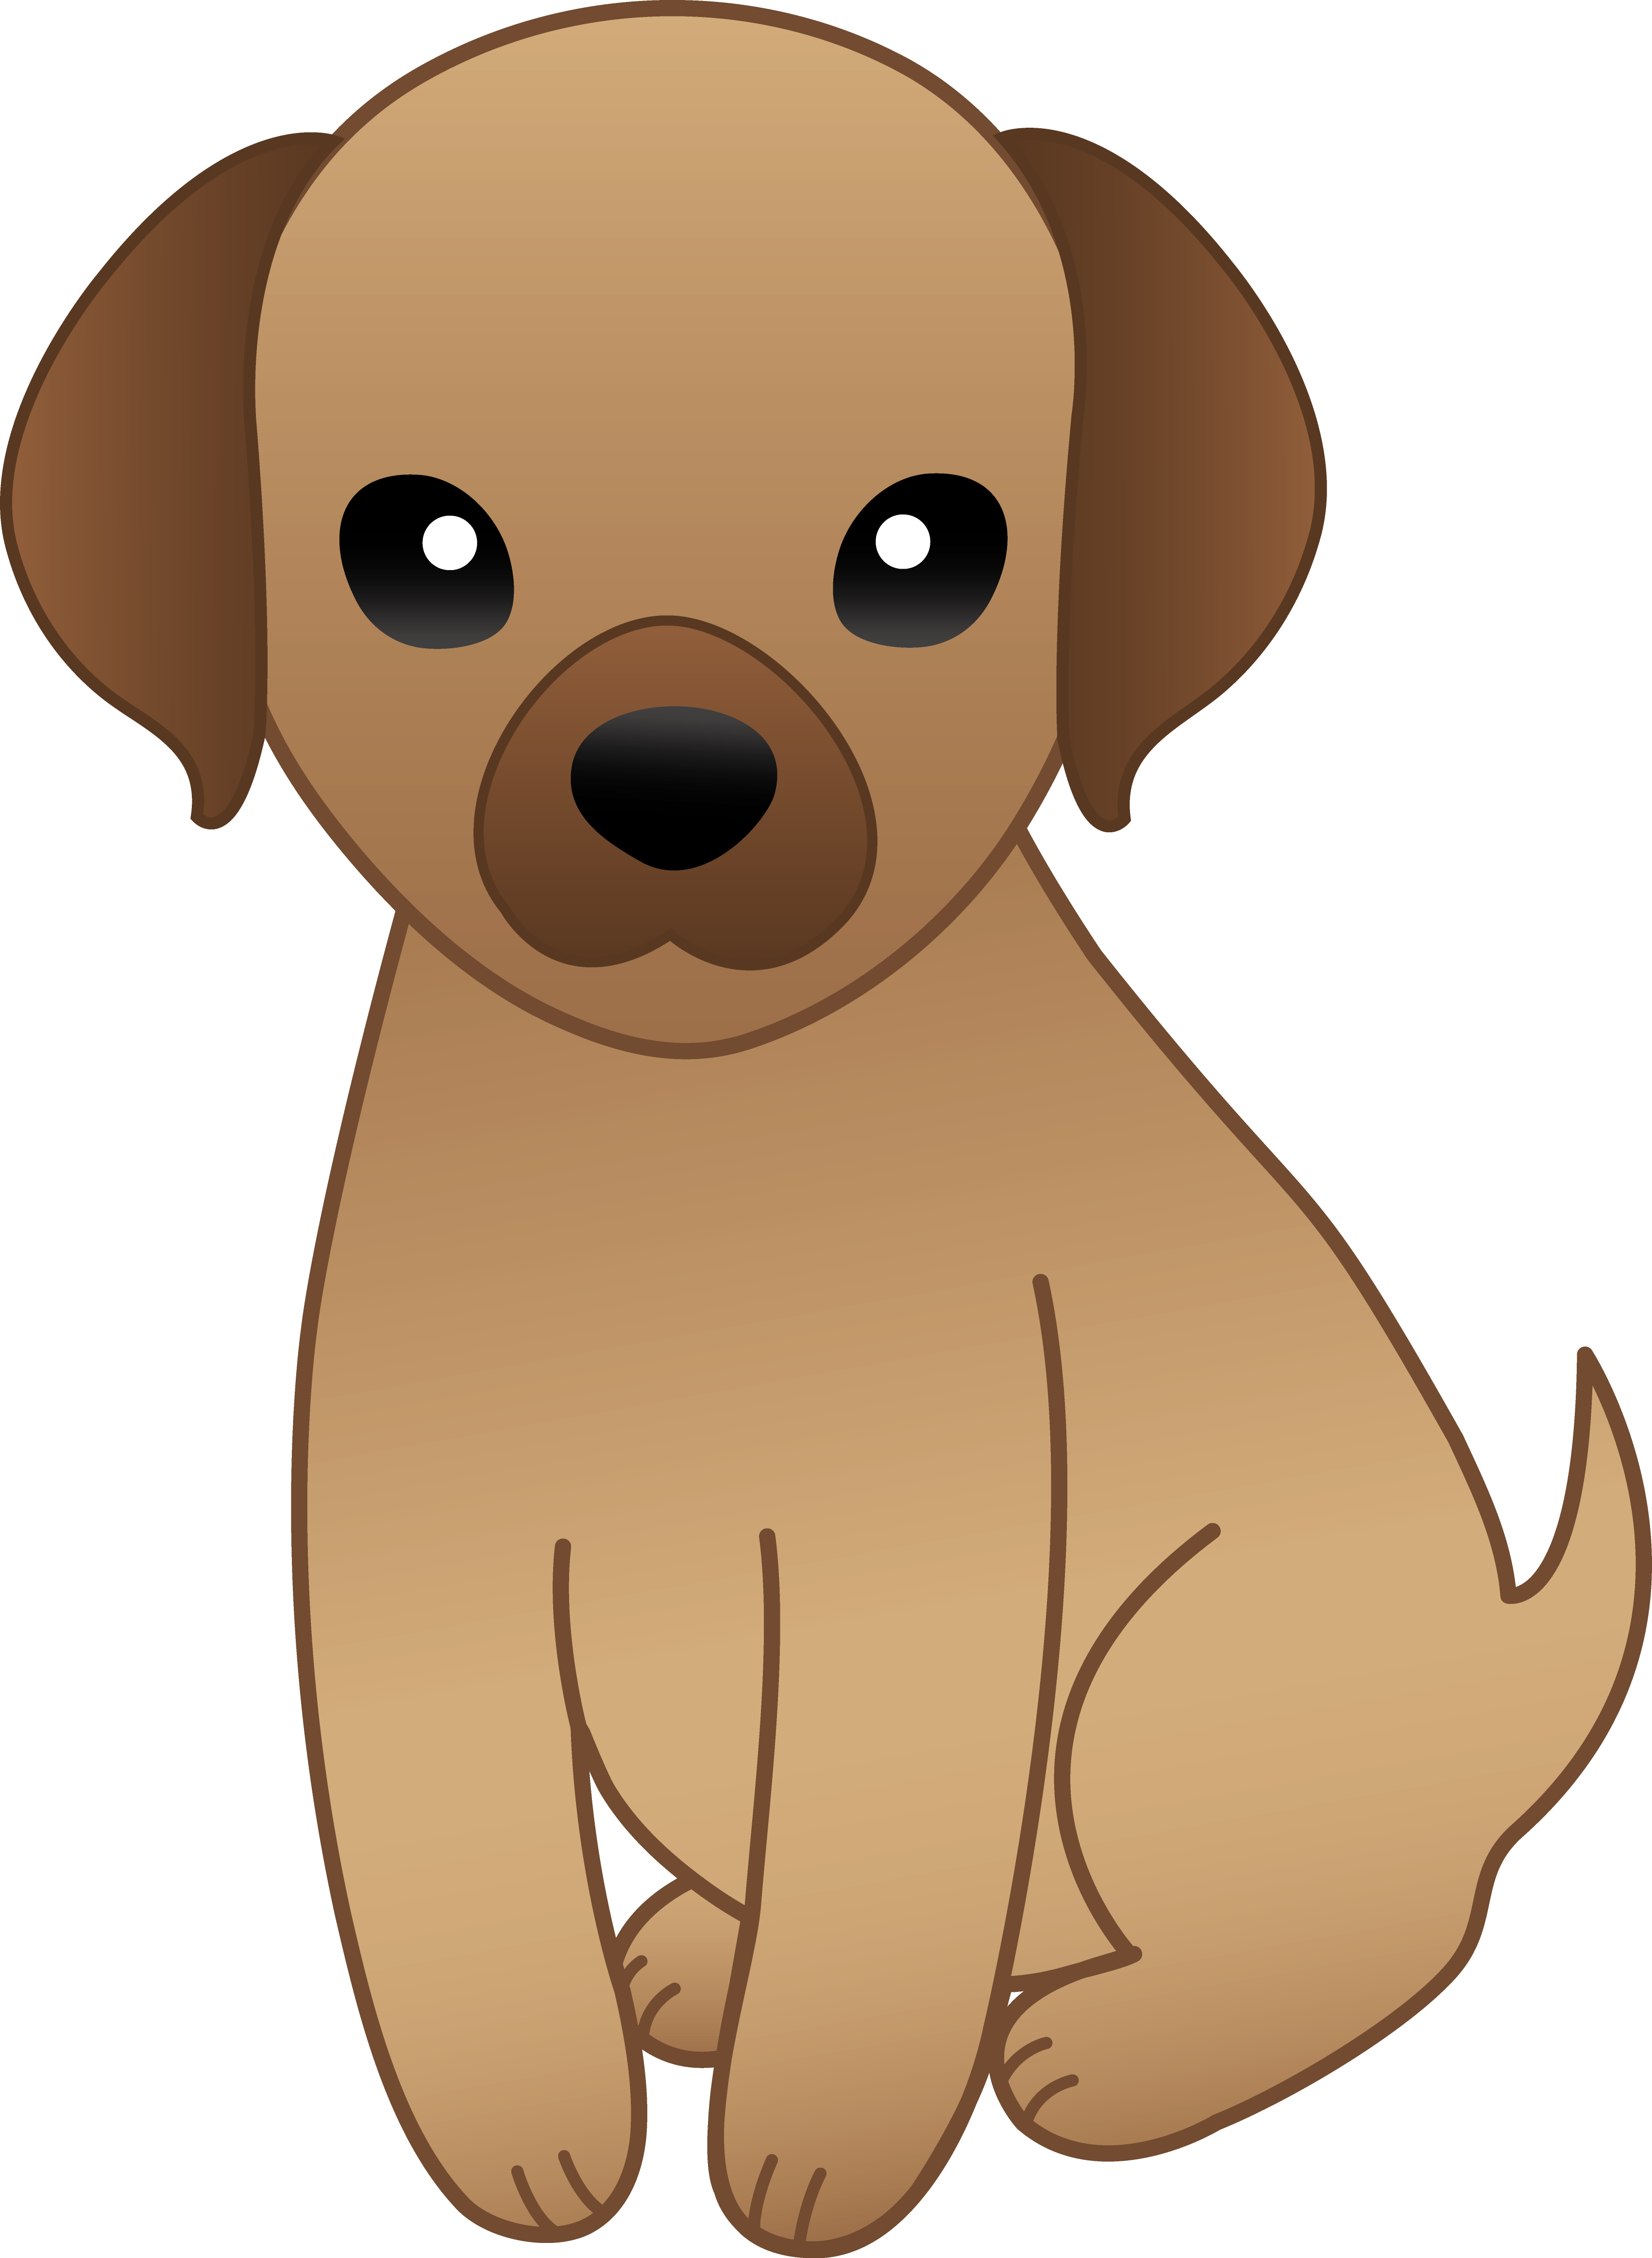 Little brown puppy free. Dog clipart cartoon